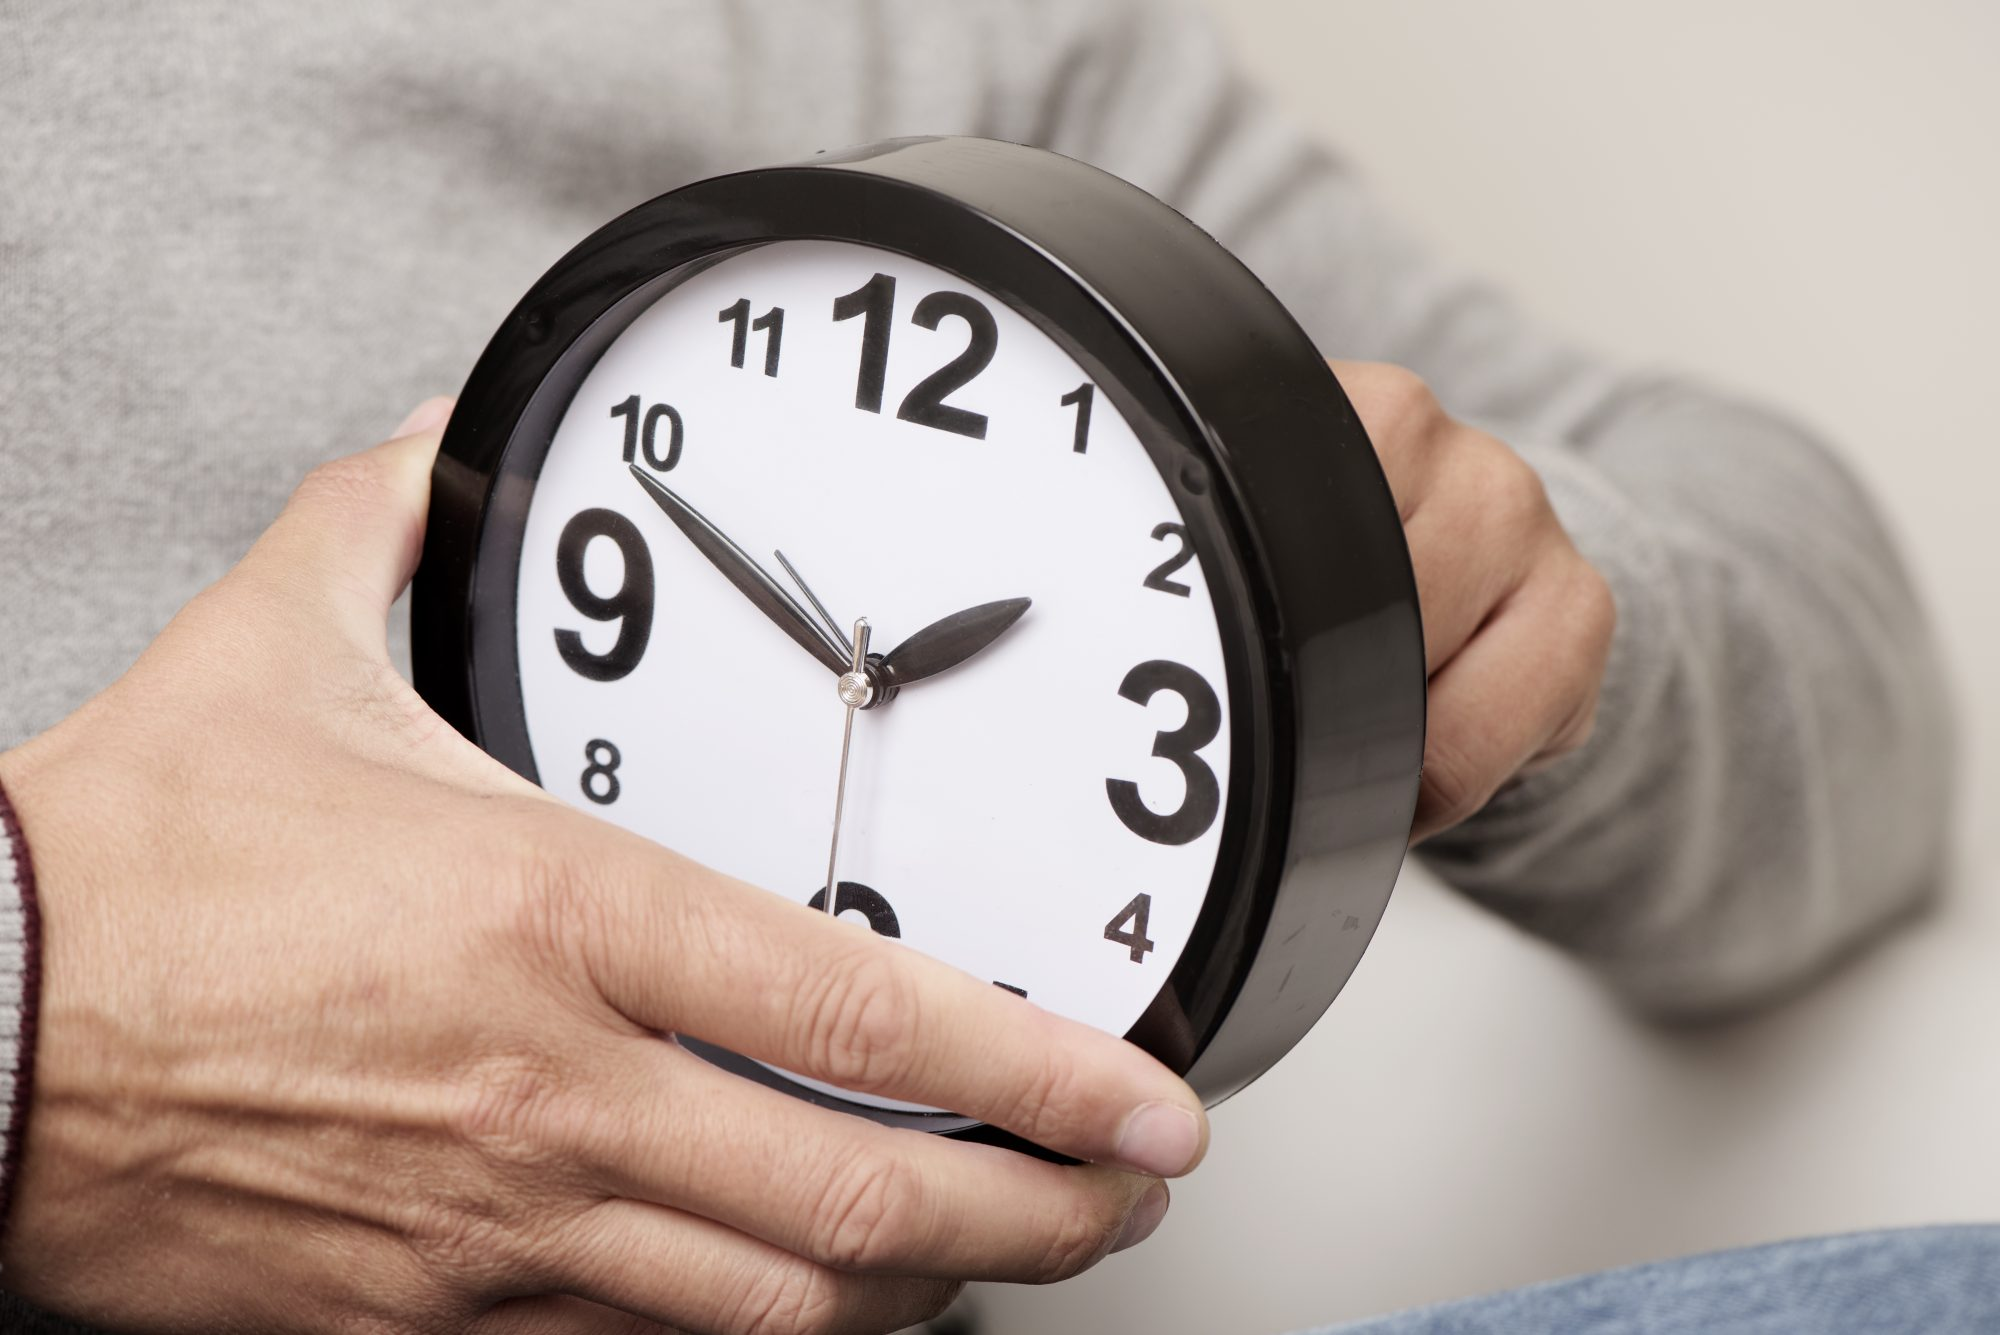 What to Expect This Weekend in the 7 States That Voted to Make Daylight Saving Time Permanent